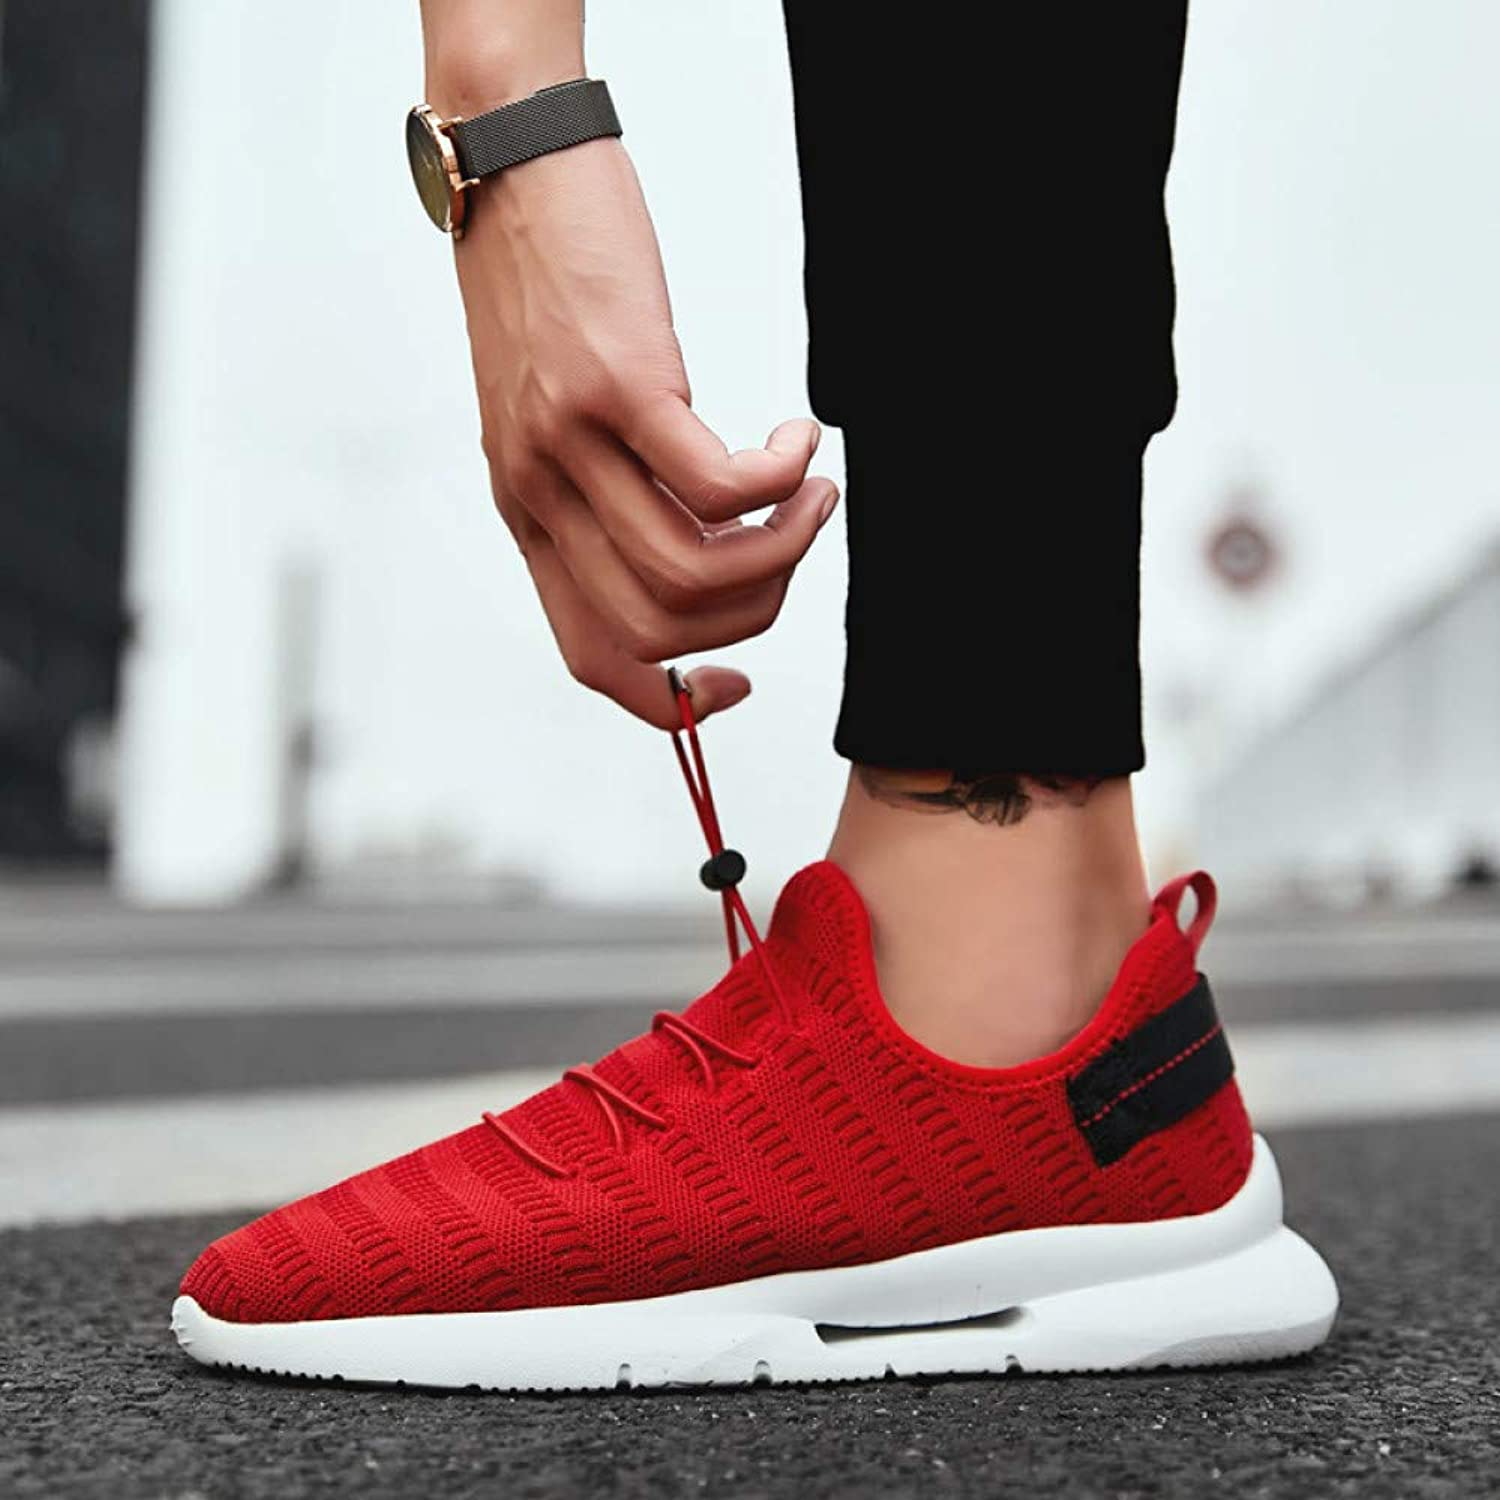 WDDGPZYDX Summer Red Men soft casual shoes sports shoes Fashion Lightweight male Comfortable Breathable shoe Leisure Footwear